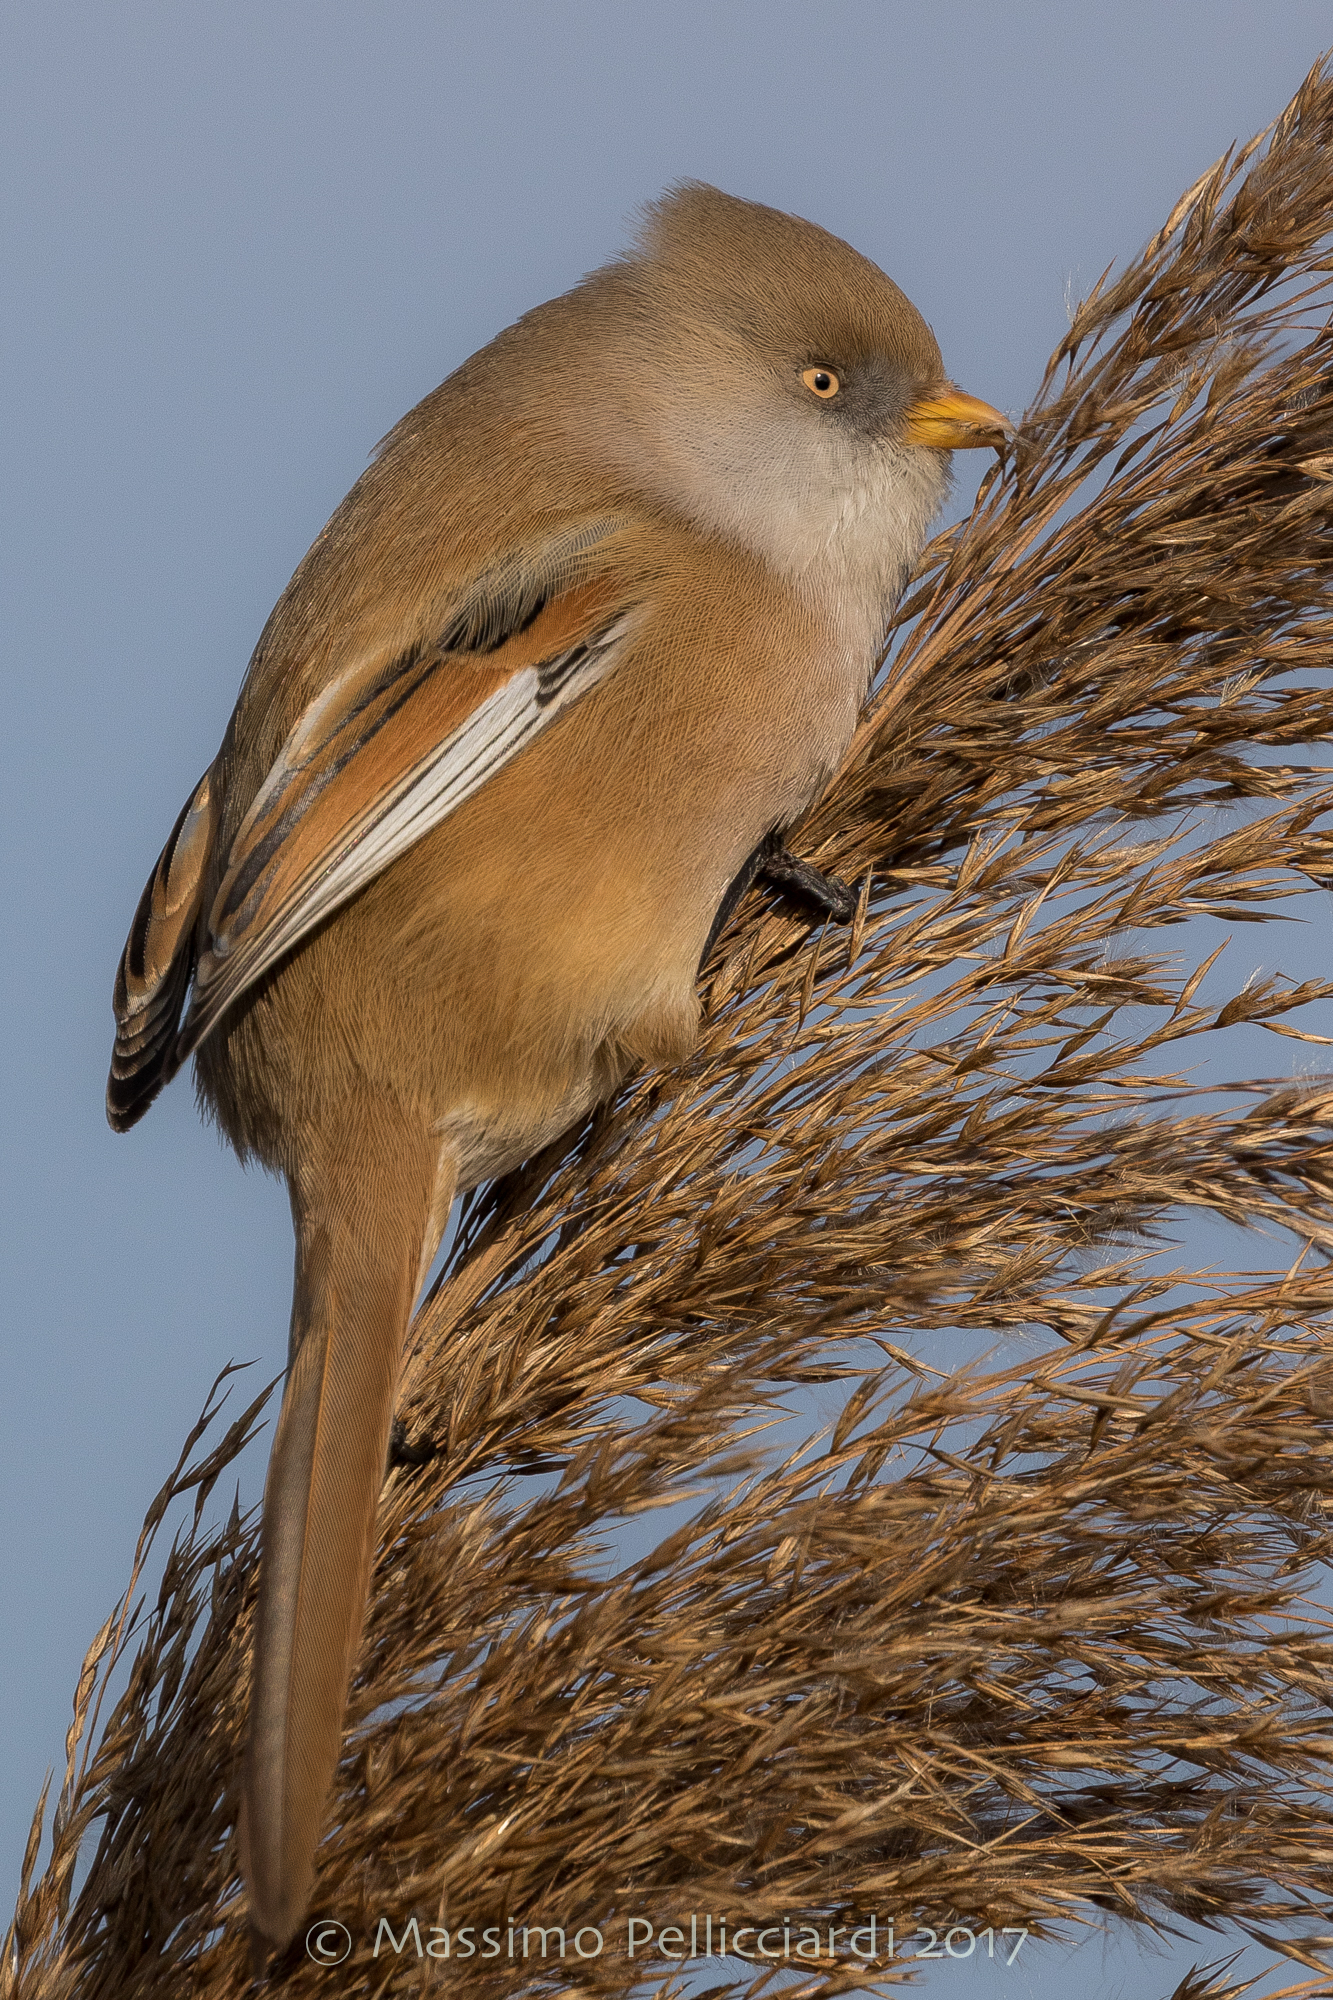 The meal of the Bearded Tit...